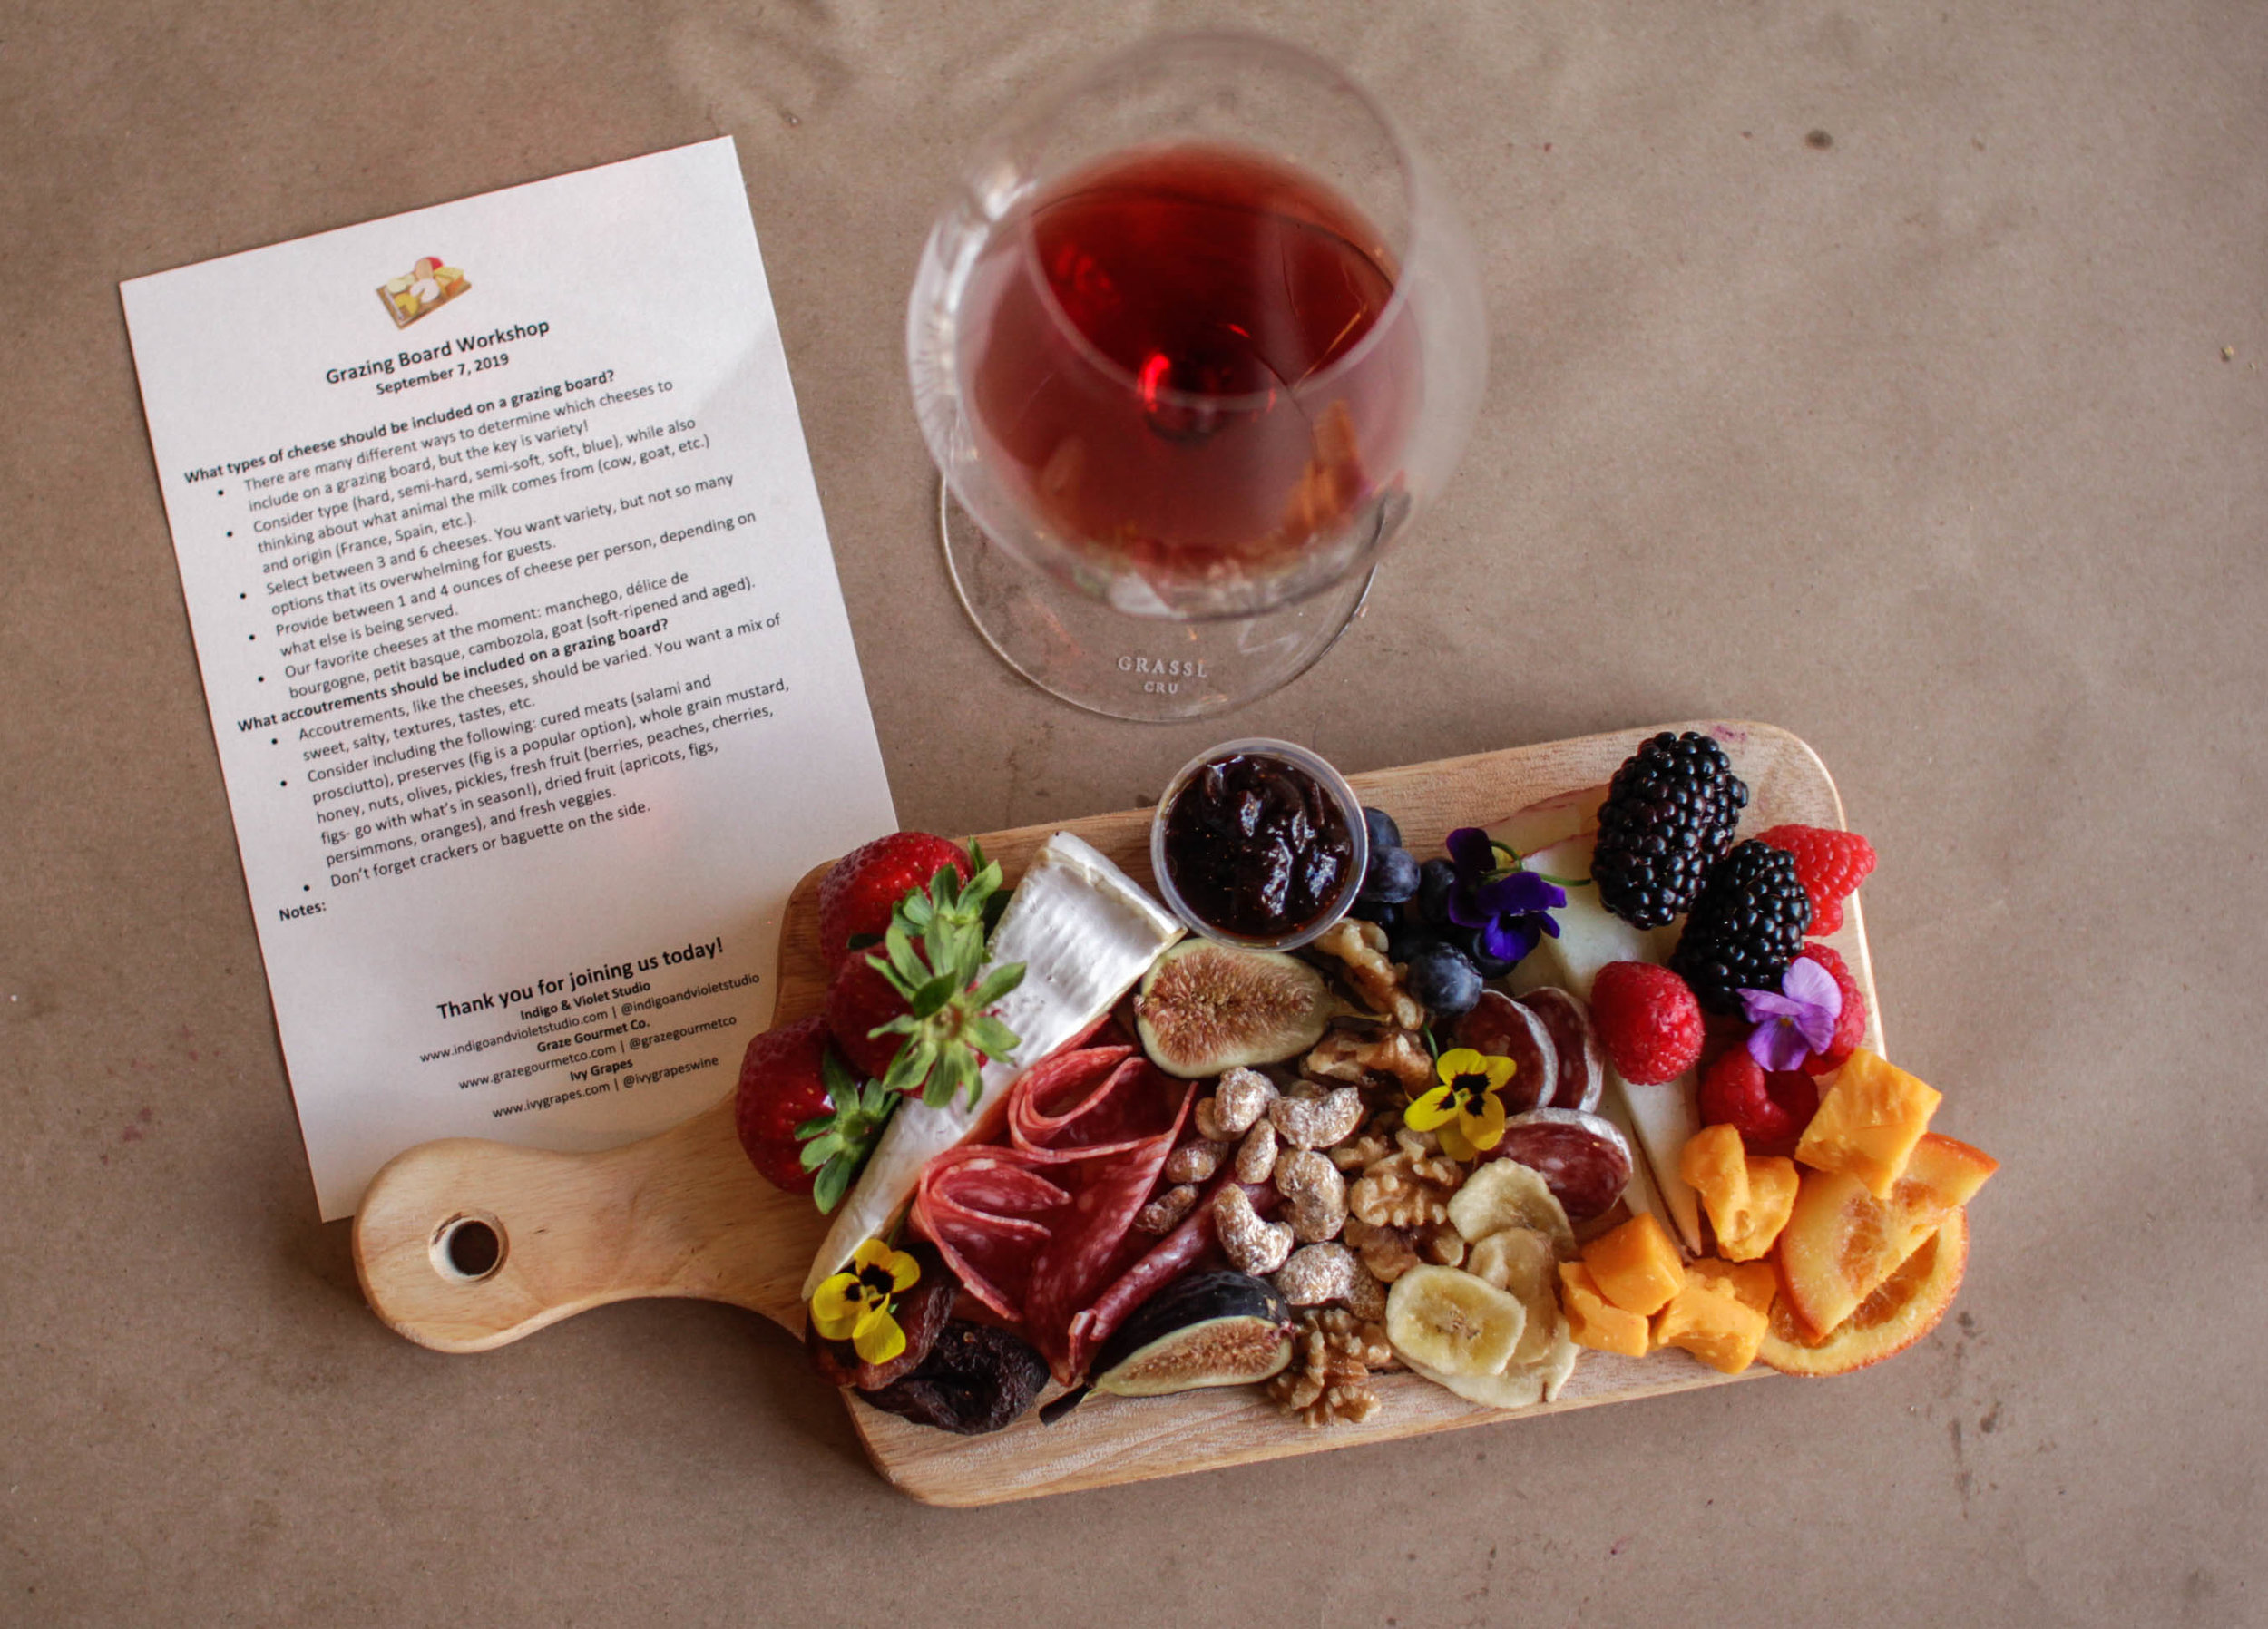 Ivy Grapes partnered with Graze Gourmet and Indigo and Violet Studios for a wine and craft event in Chicago, IL